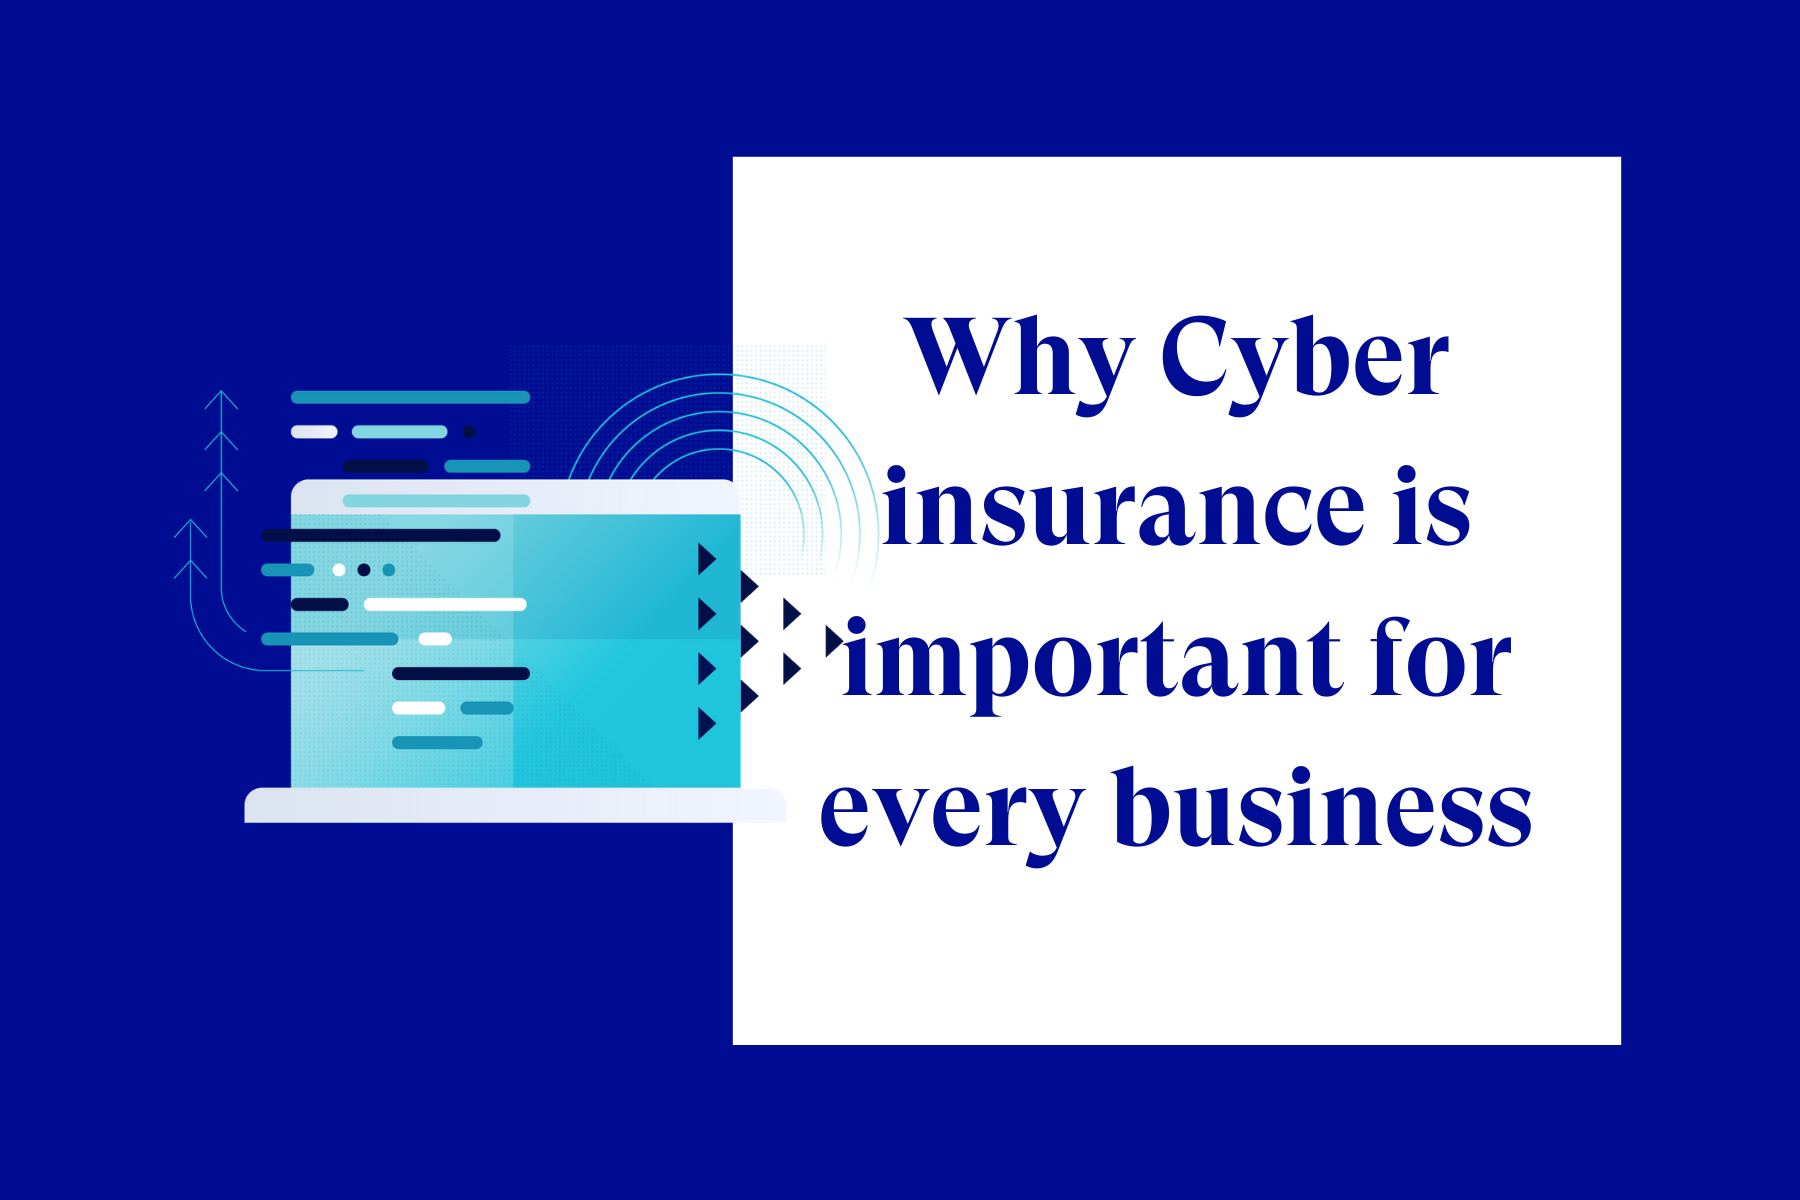 Why Cyber Insurance is Important for Every Business